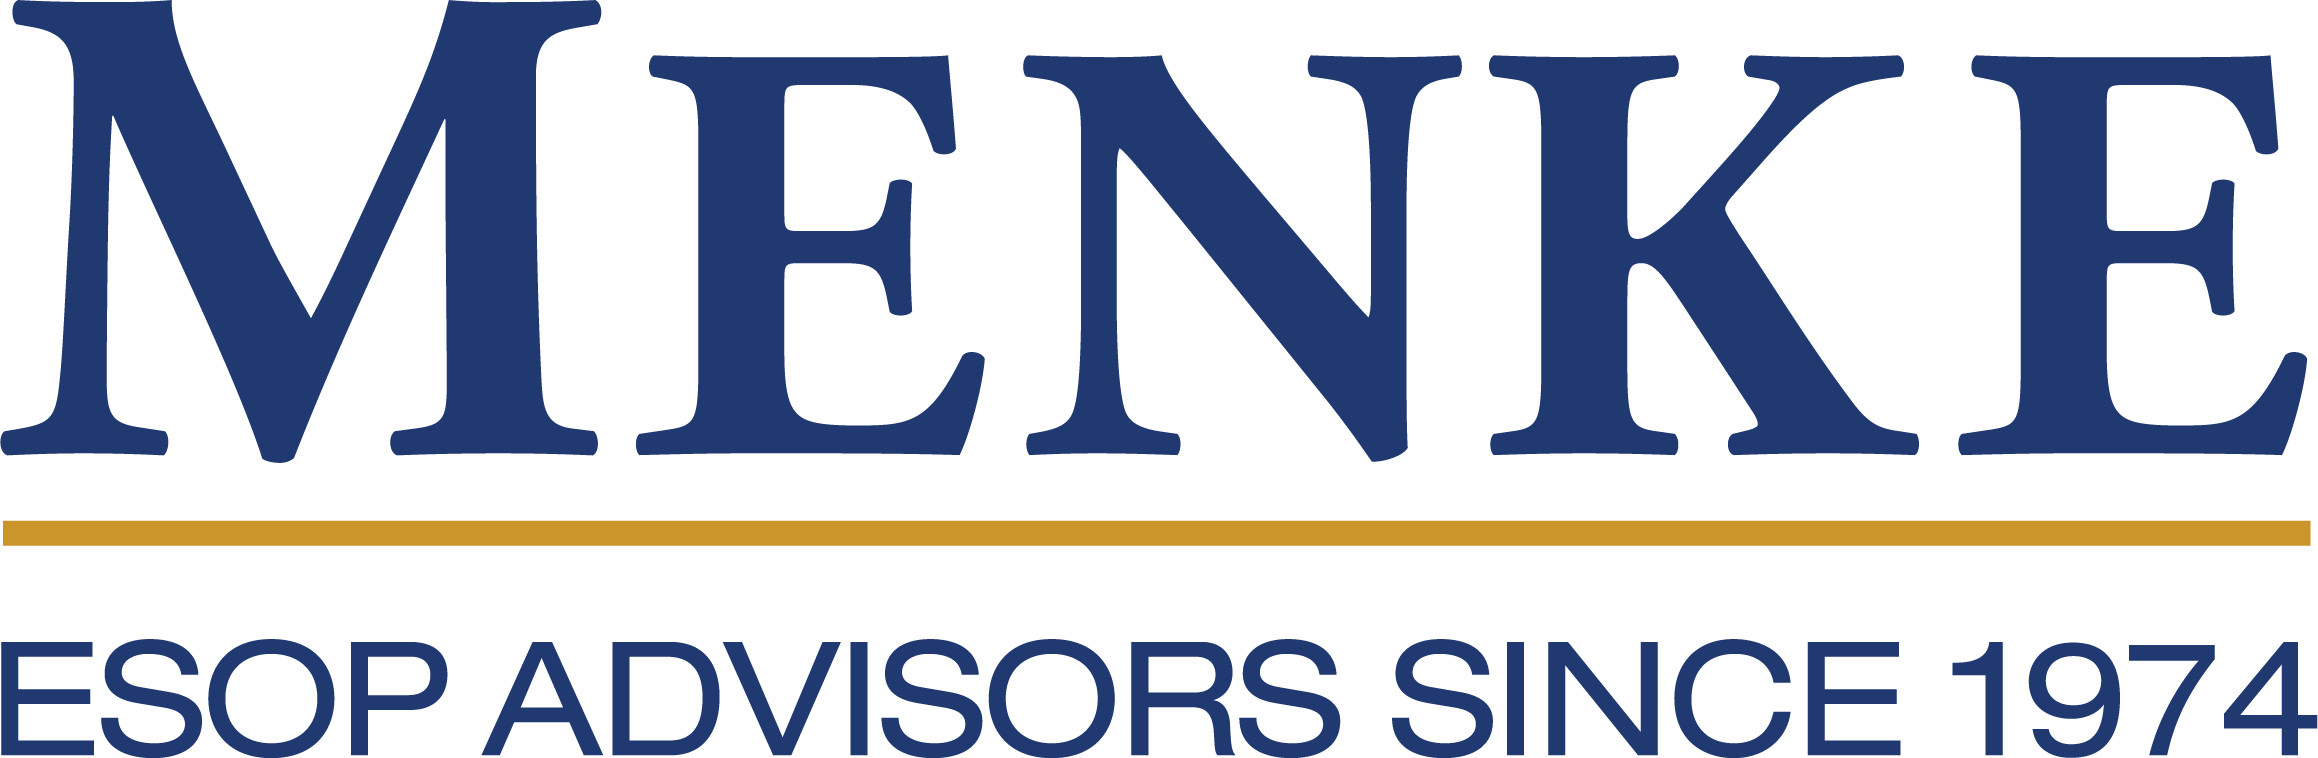 The Menke Group Logo